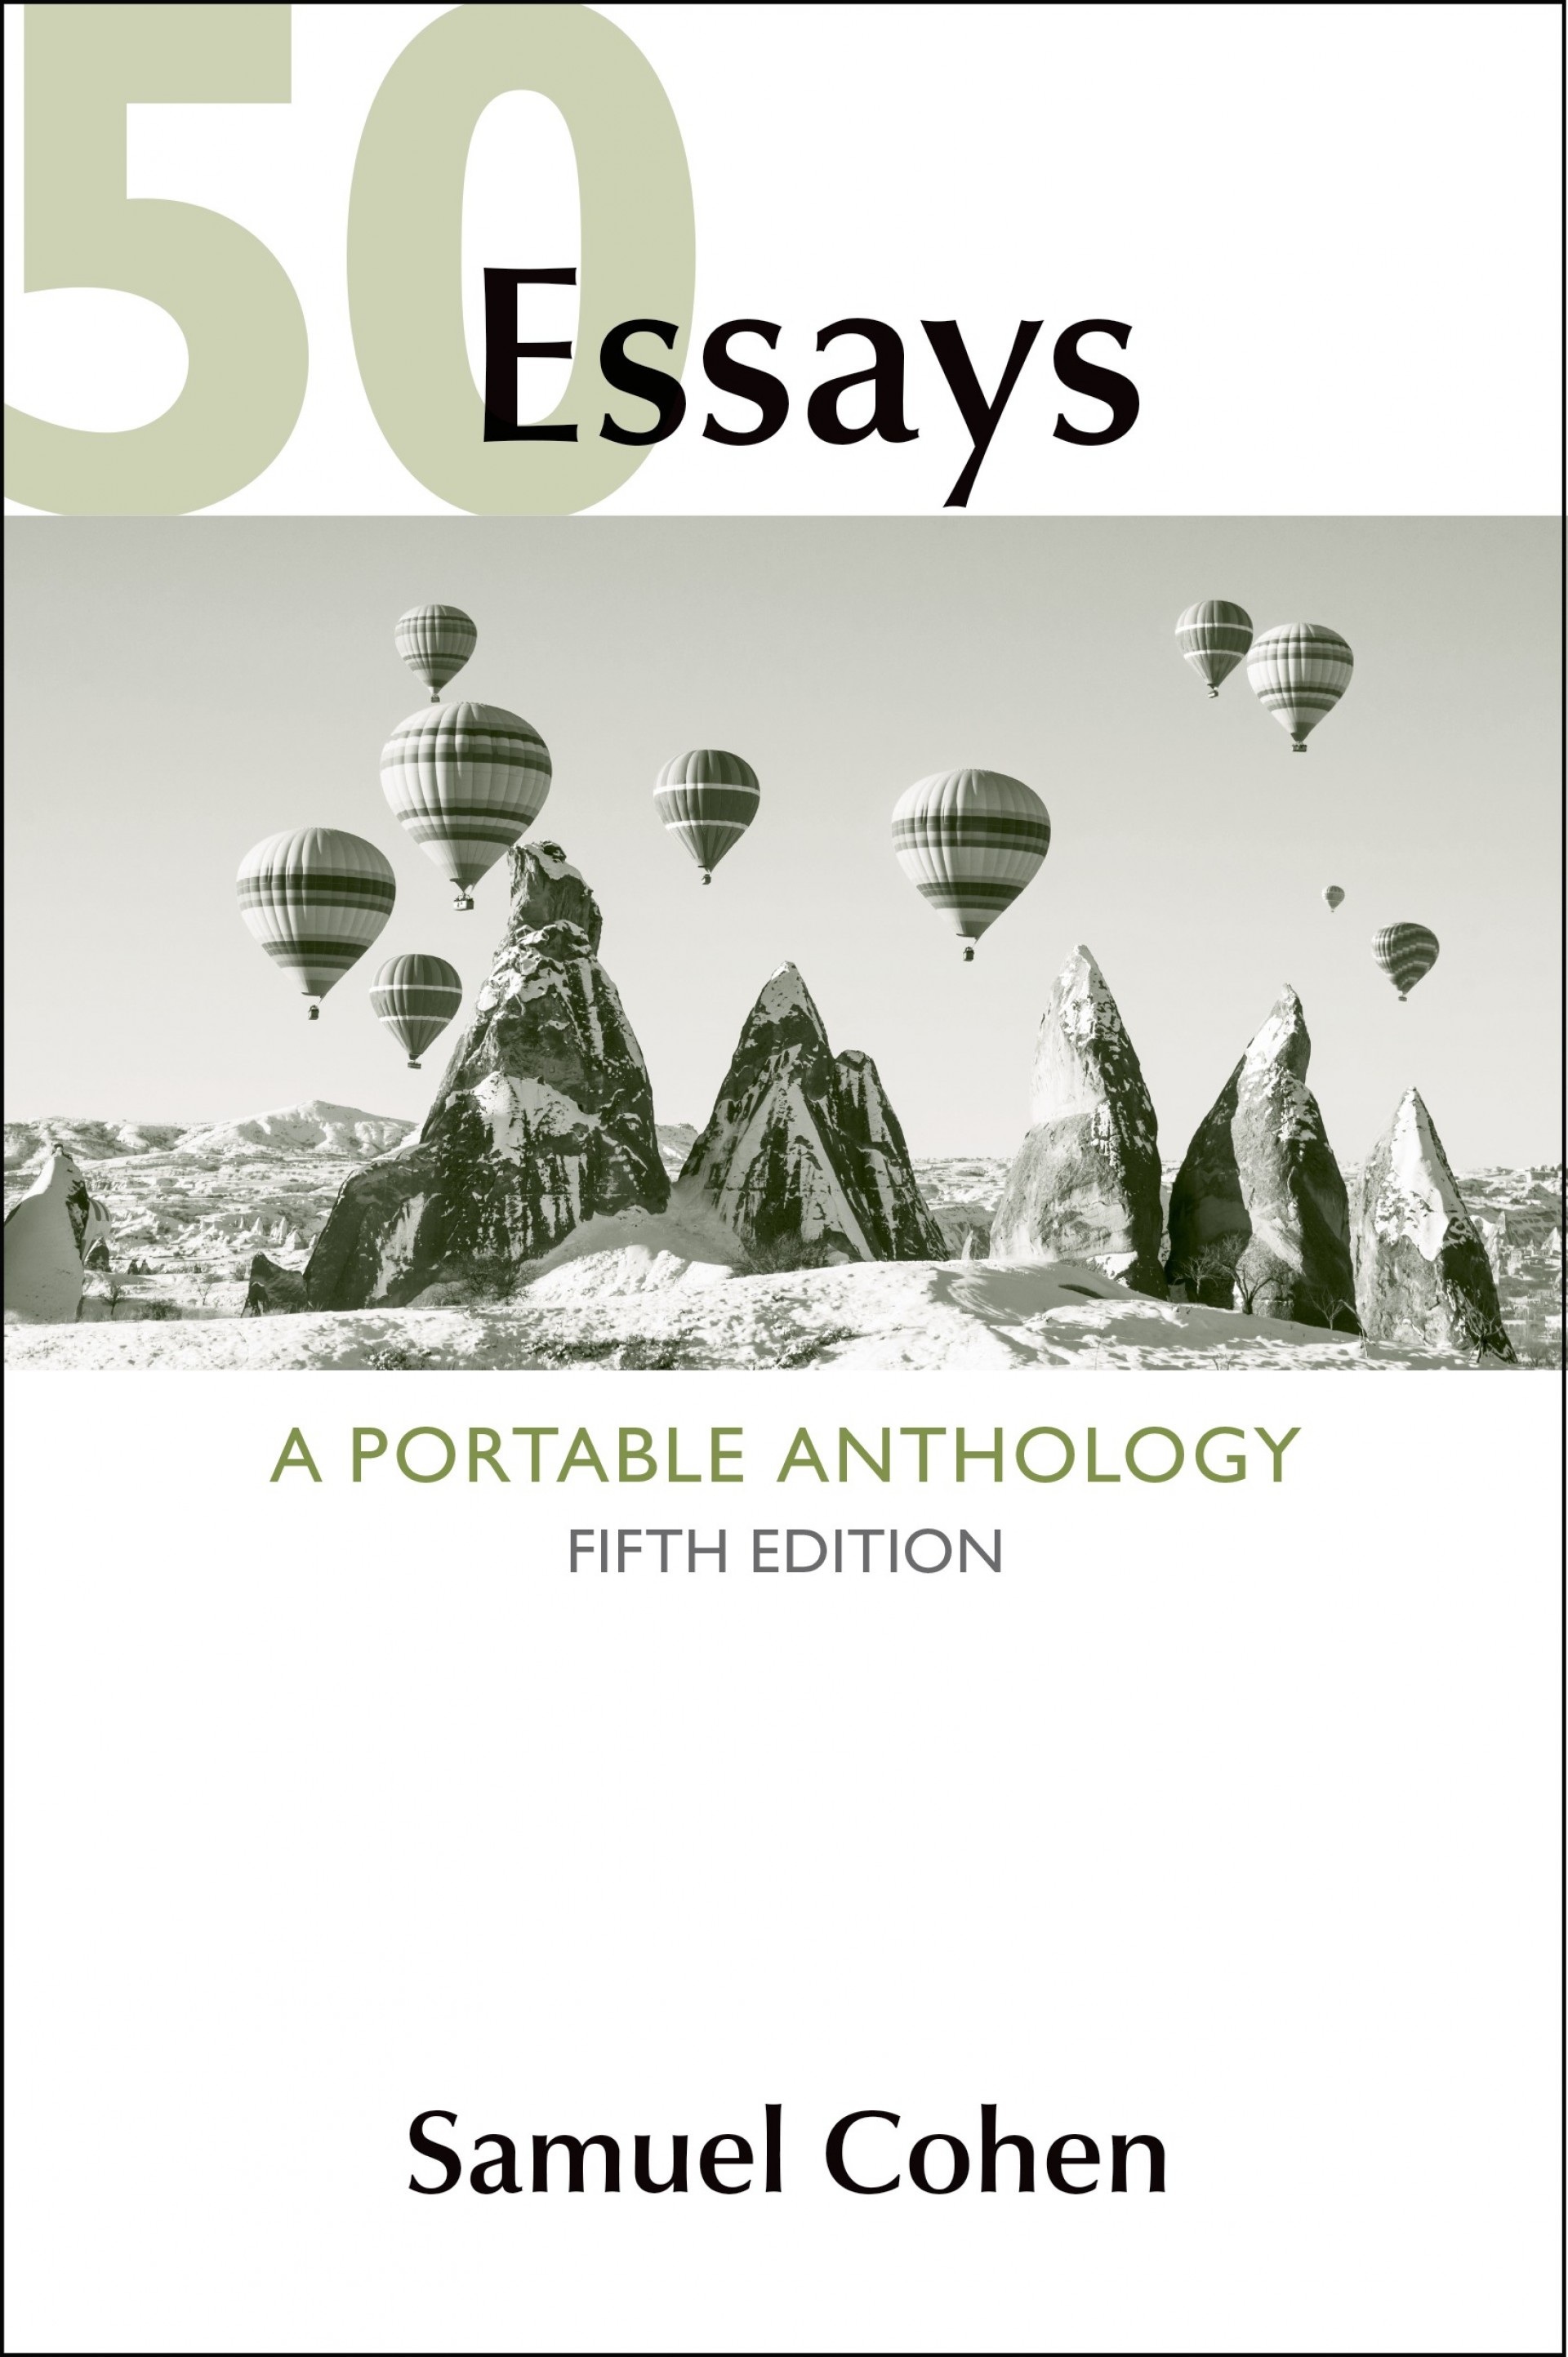 005 Essay Example Shocking 50 Essays A Portable Anthology 4th Edition Answers Pdf Free Samuel Cohen 1920